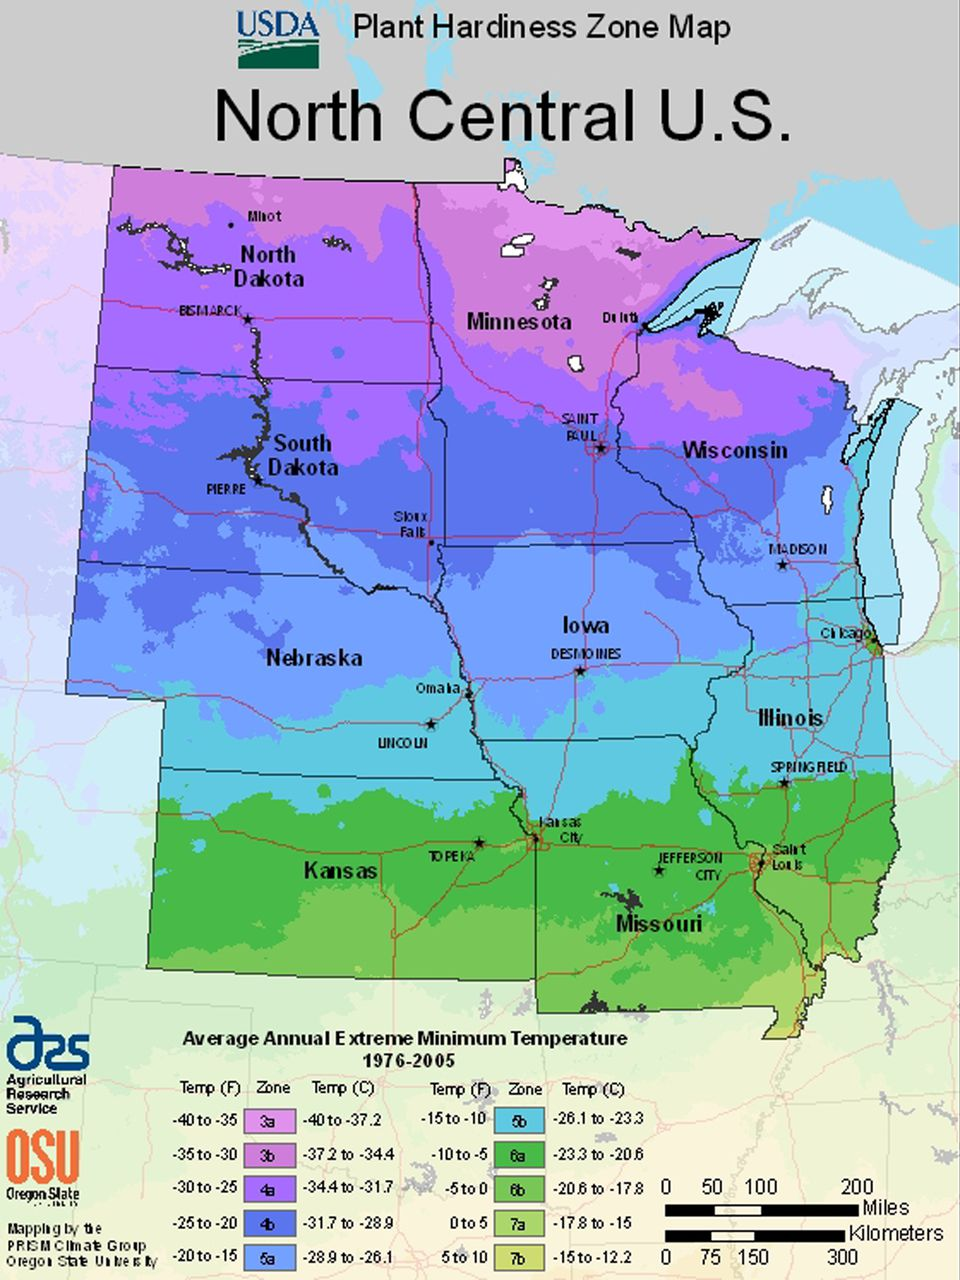 Maps For Growing Zones From The USDA How Cold It Gets - Us zone map